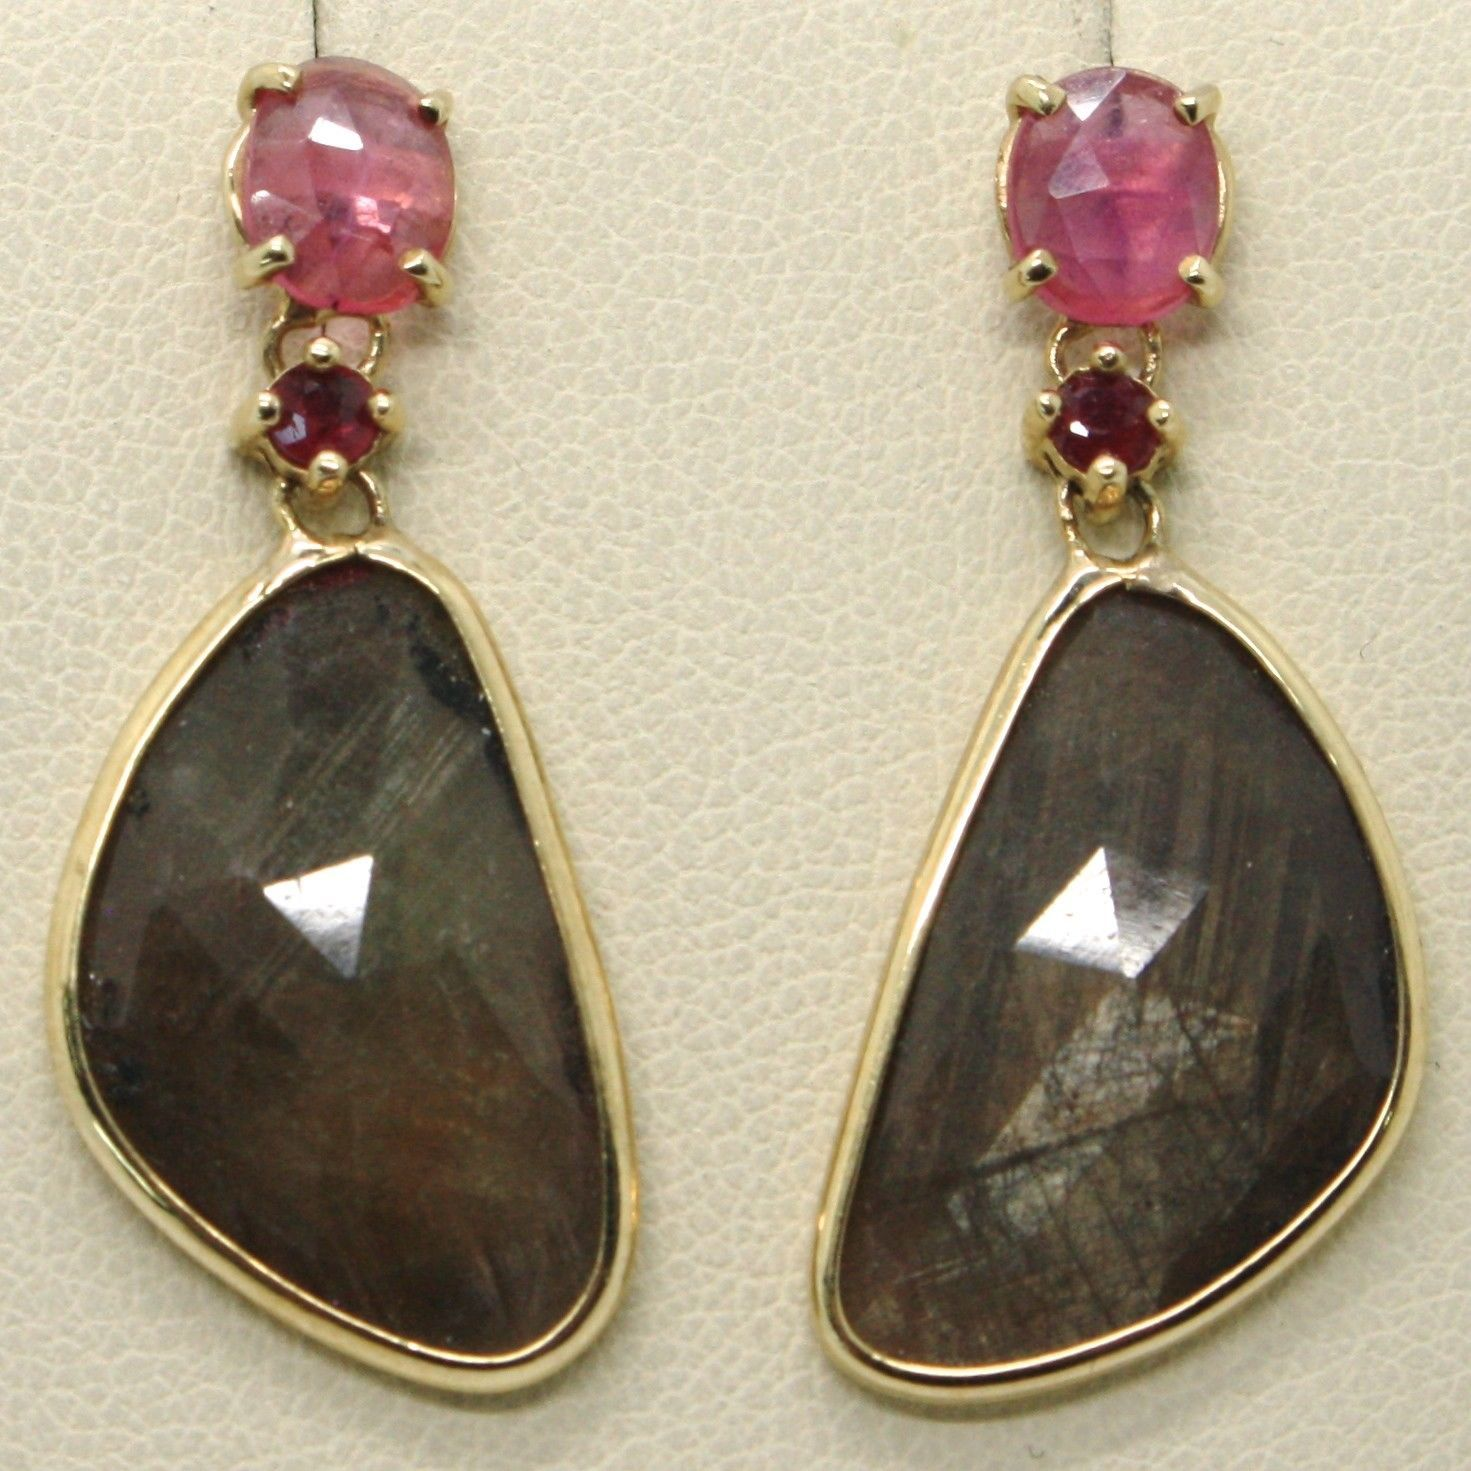 9K YELLOW GOLD PENDANT EARRINGS, DROP BROWN & OVAL PINK SAPPHIRE, RED RUBY